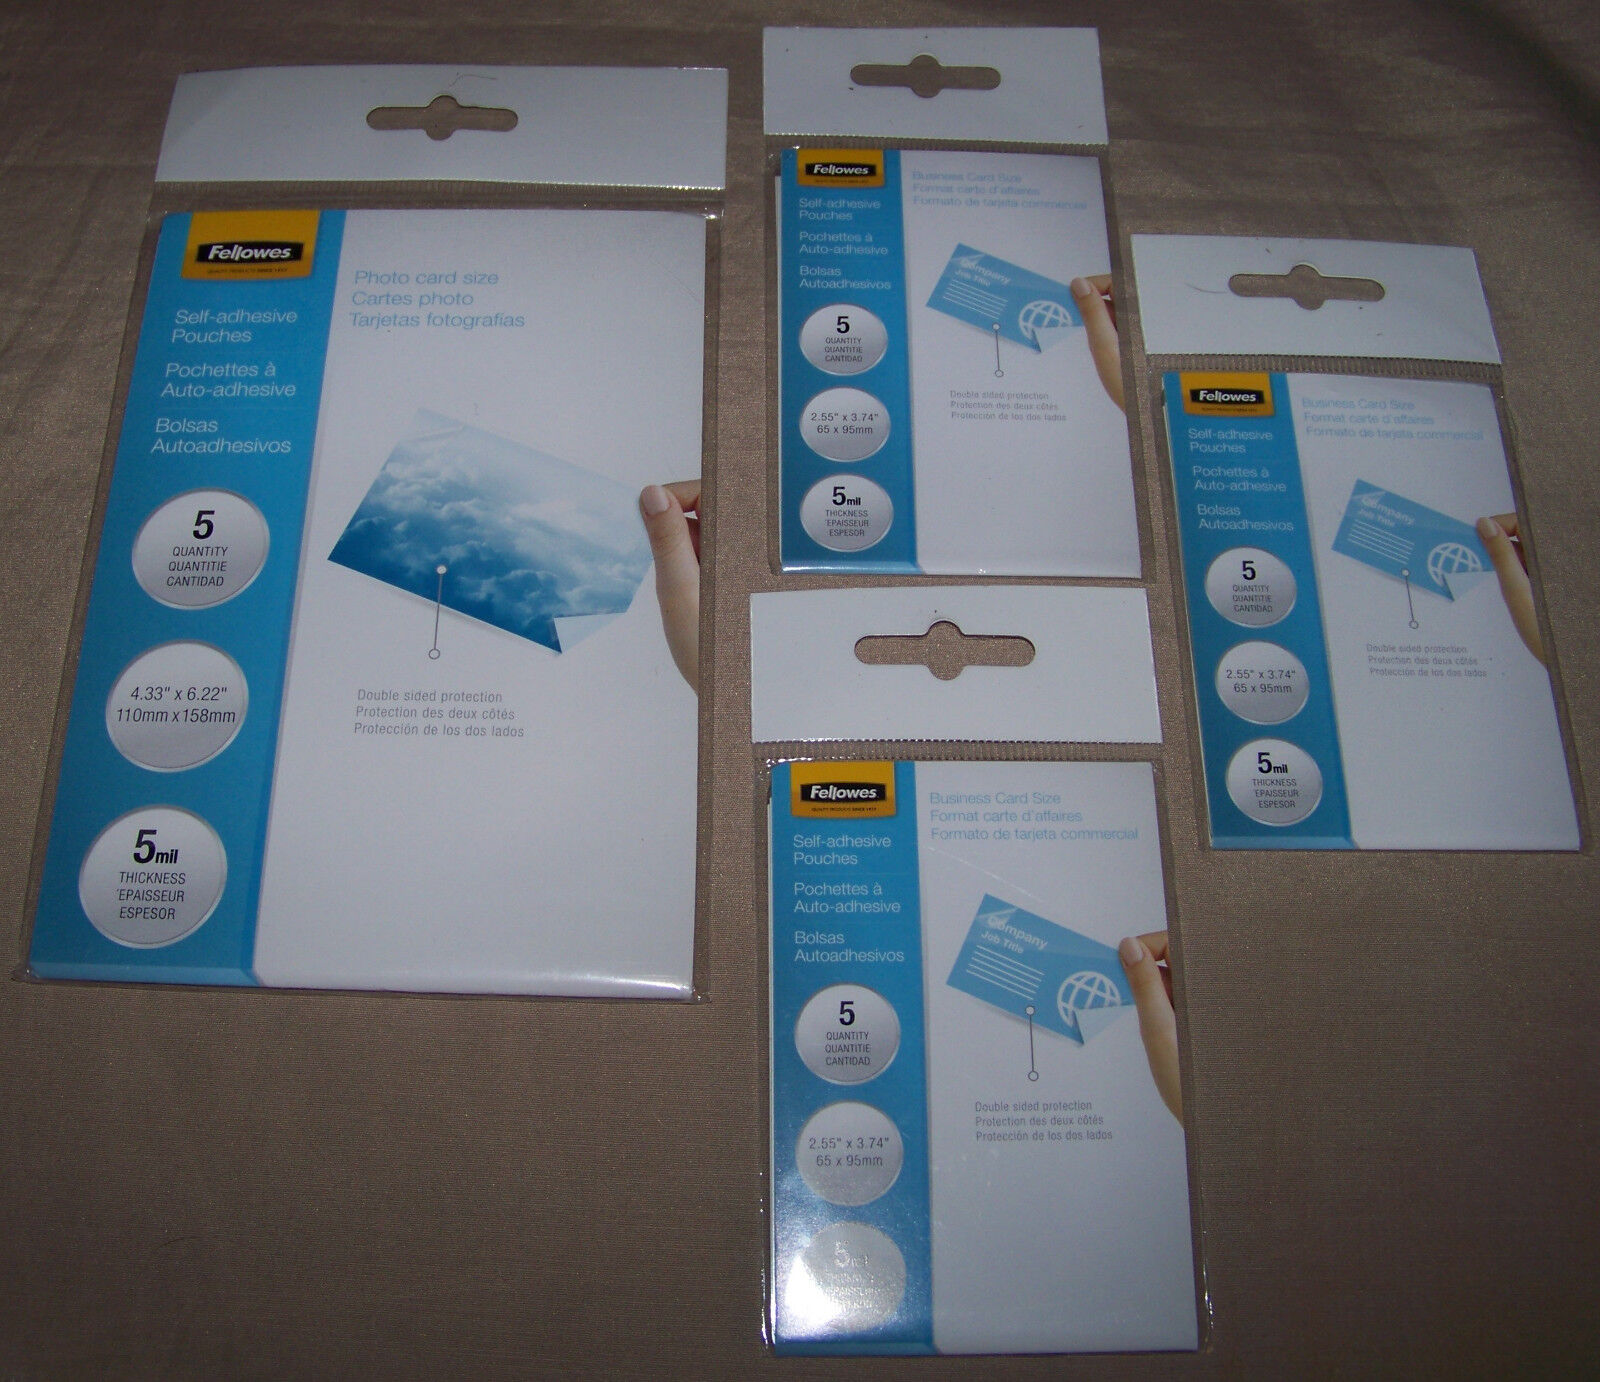 Fellowes Self-Adhesive 5mil Pouches + 1 5-Pack Photo Size